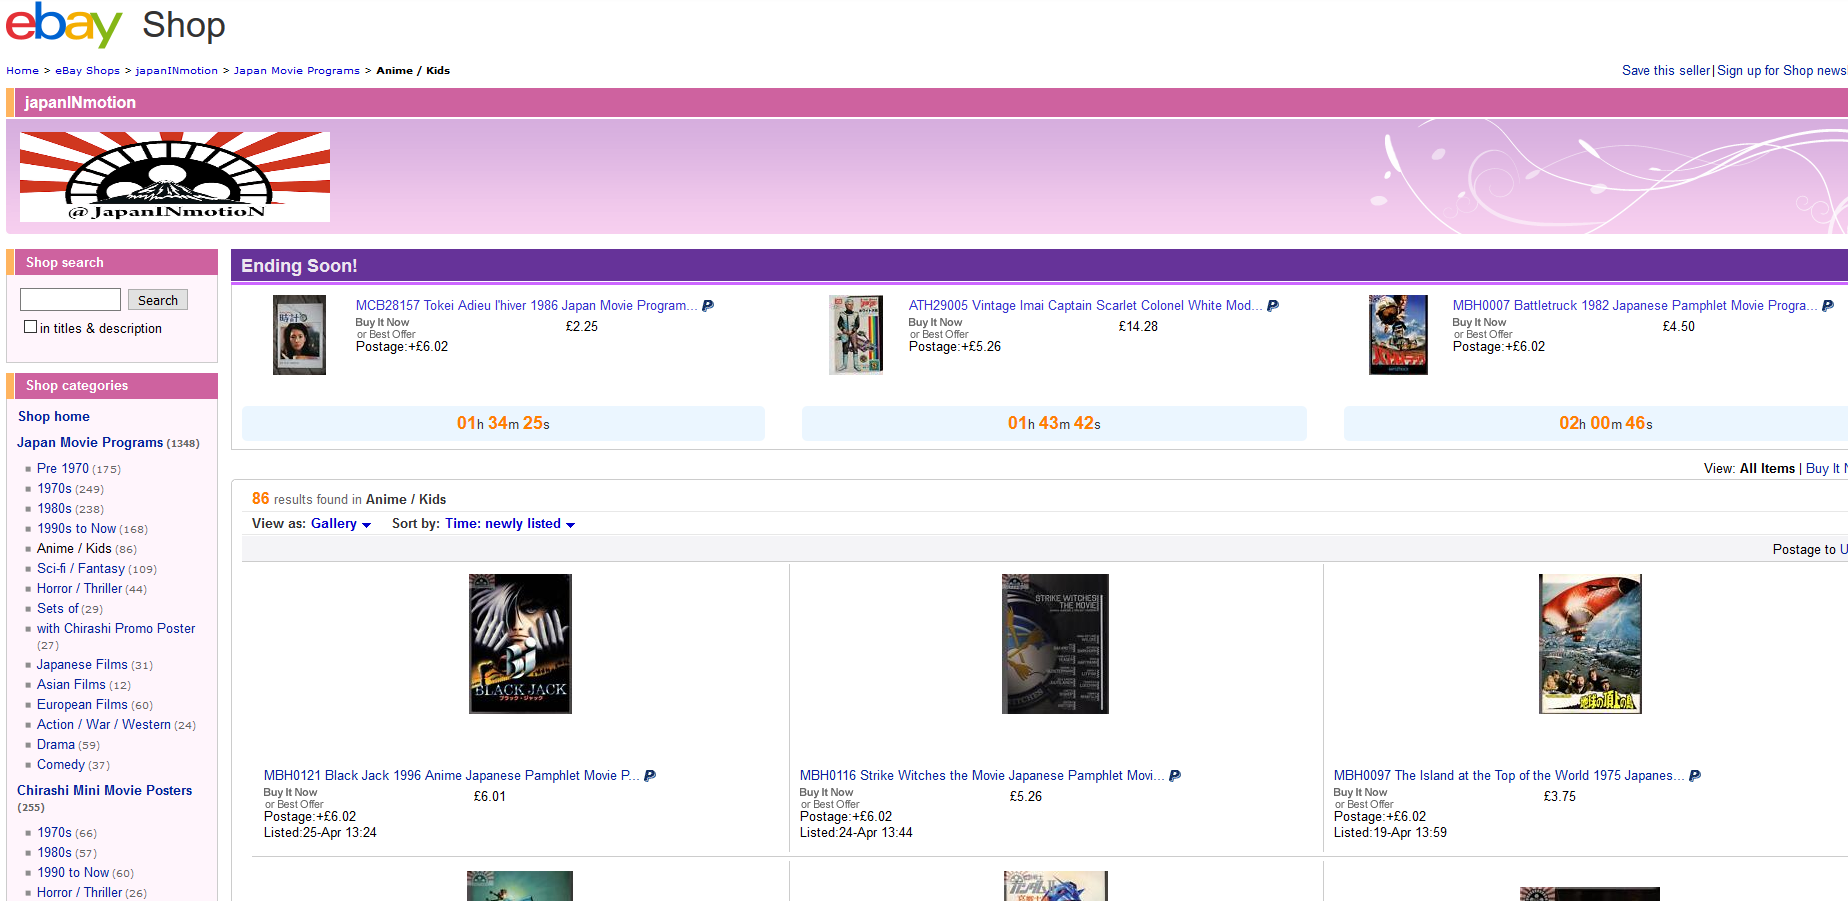 Store Categories Are Still Missing The Ebay Community